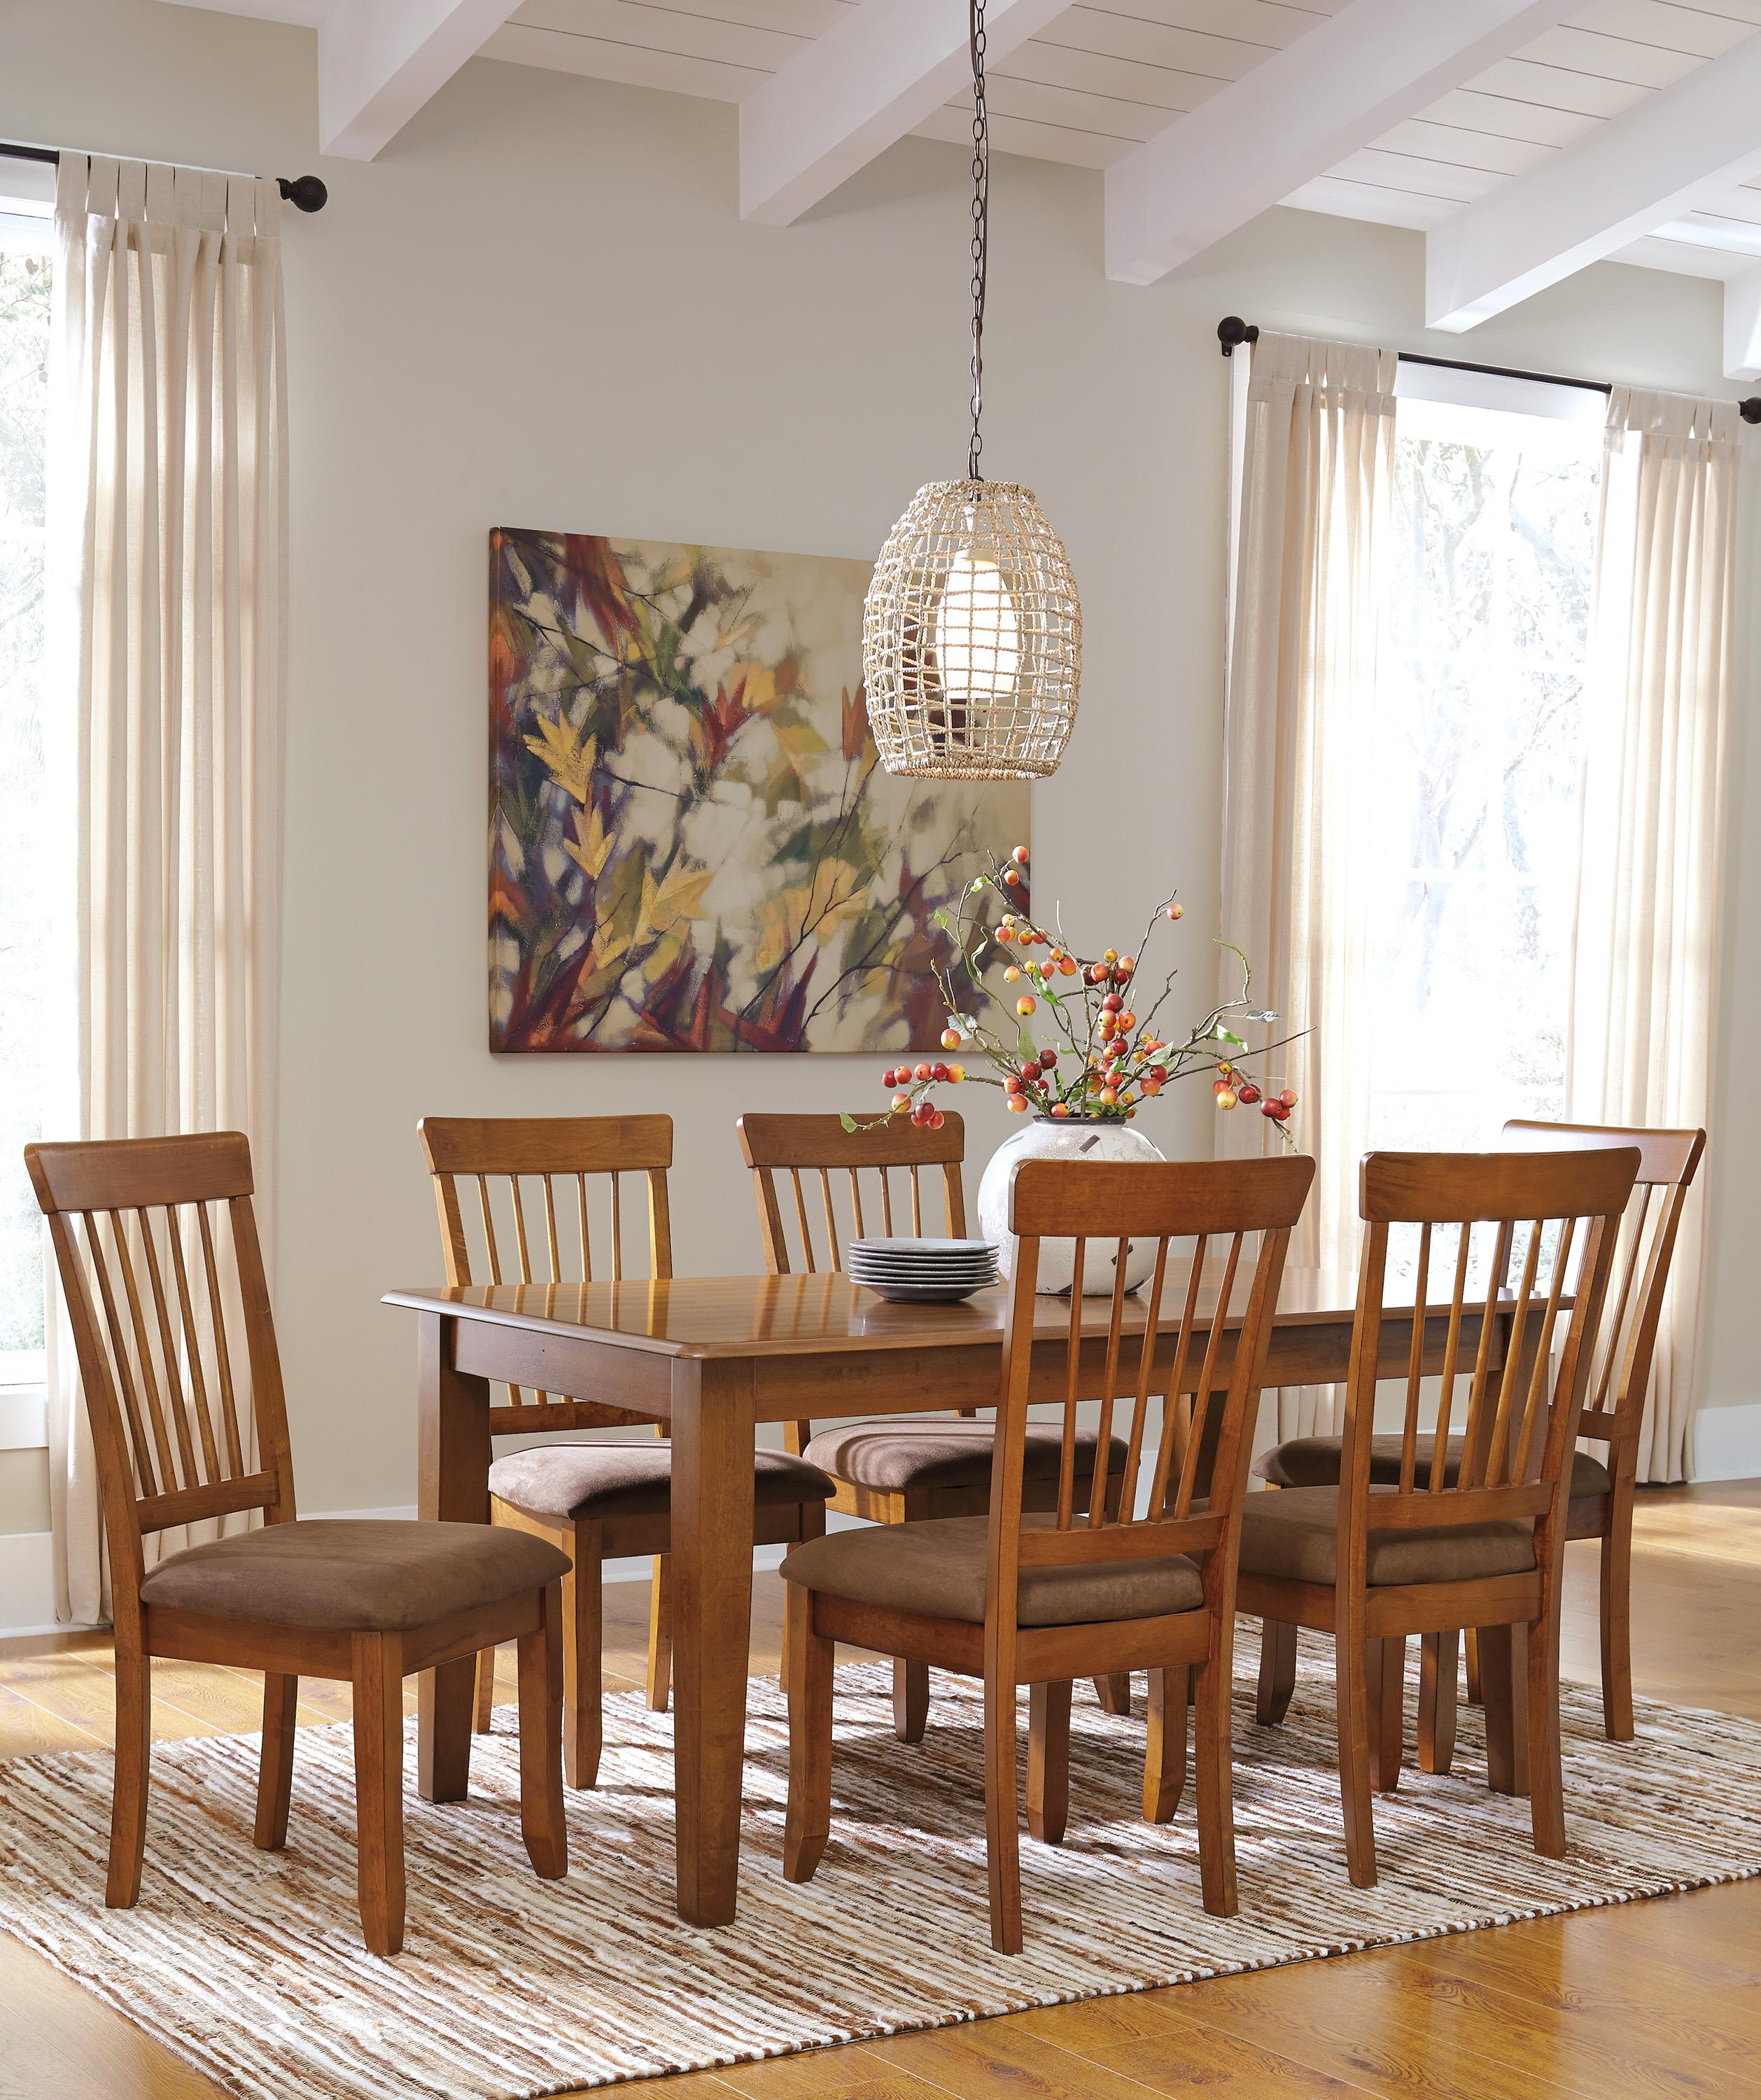 American Furniture Warehouse Gilbert: Ashley Furniture Berringer D199-01 Hickory Stained Side